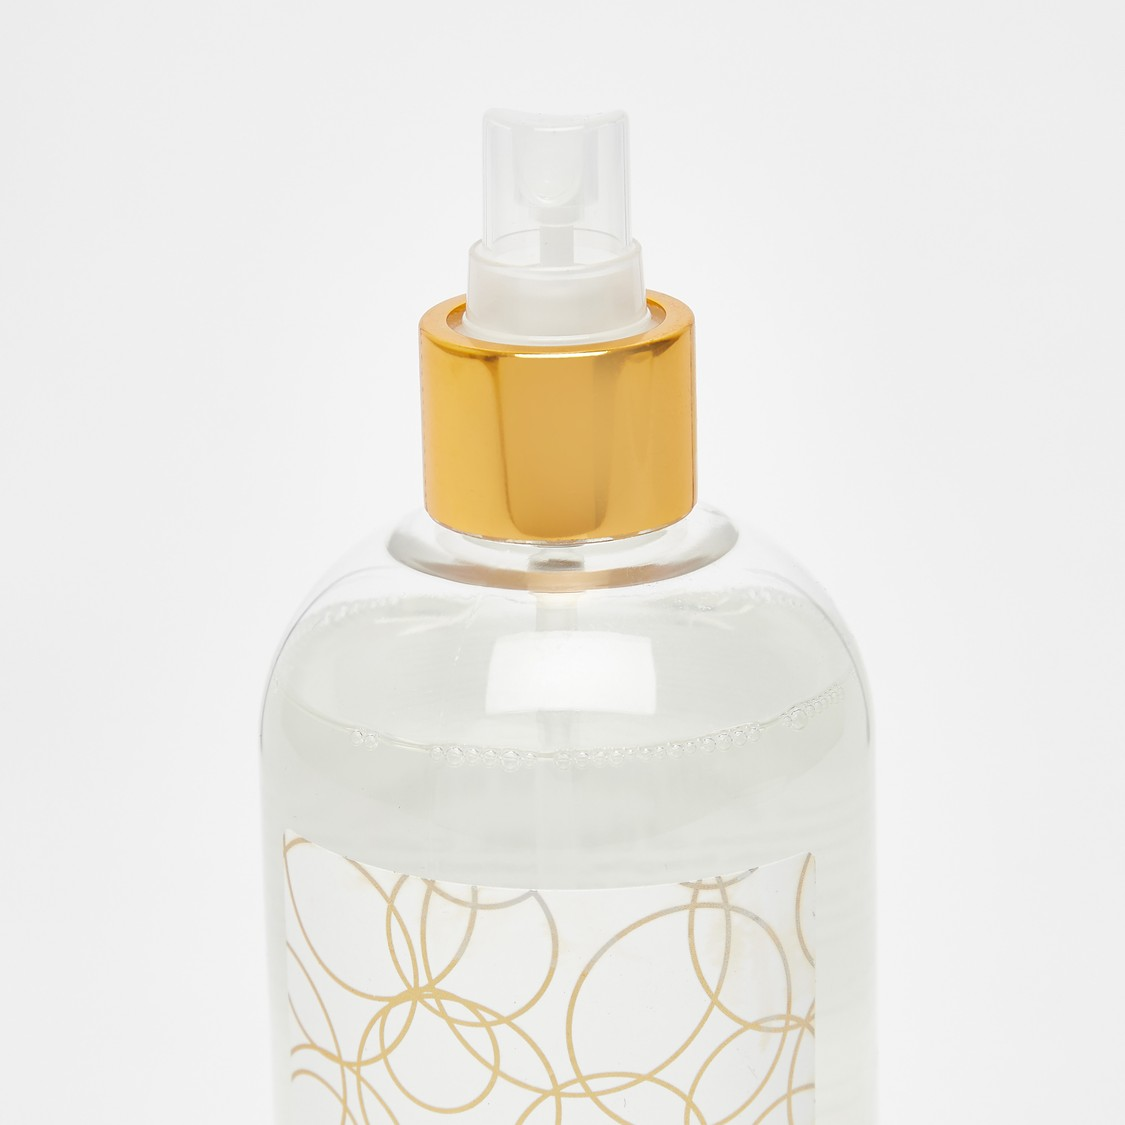 Royal Peony Room Spray - 400 ml